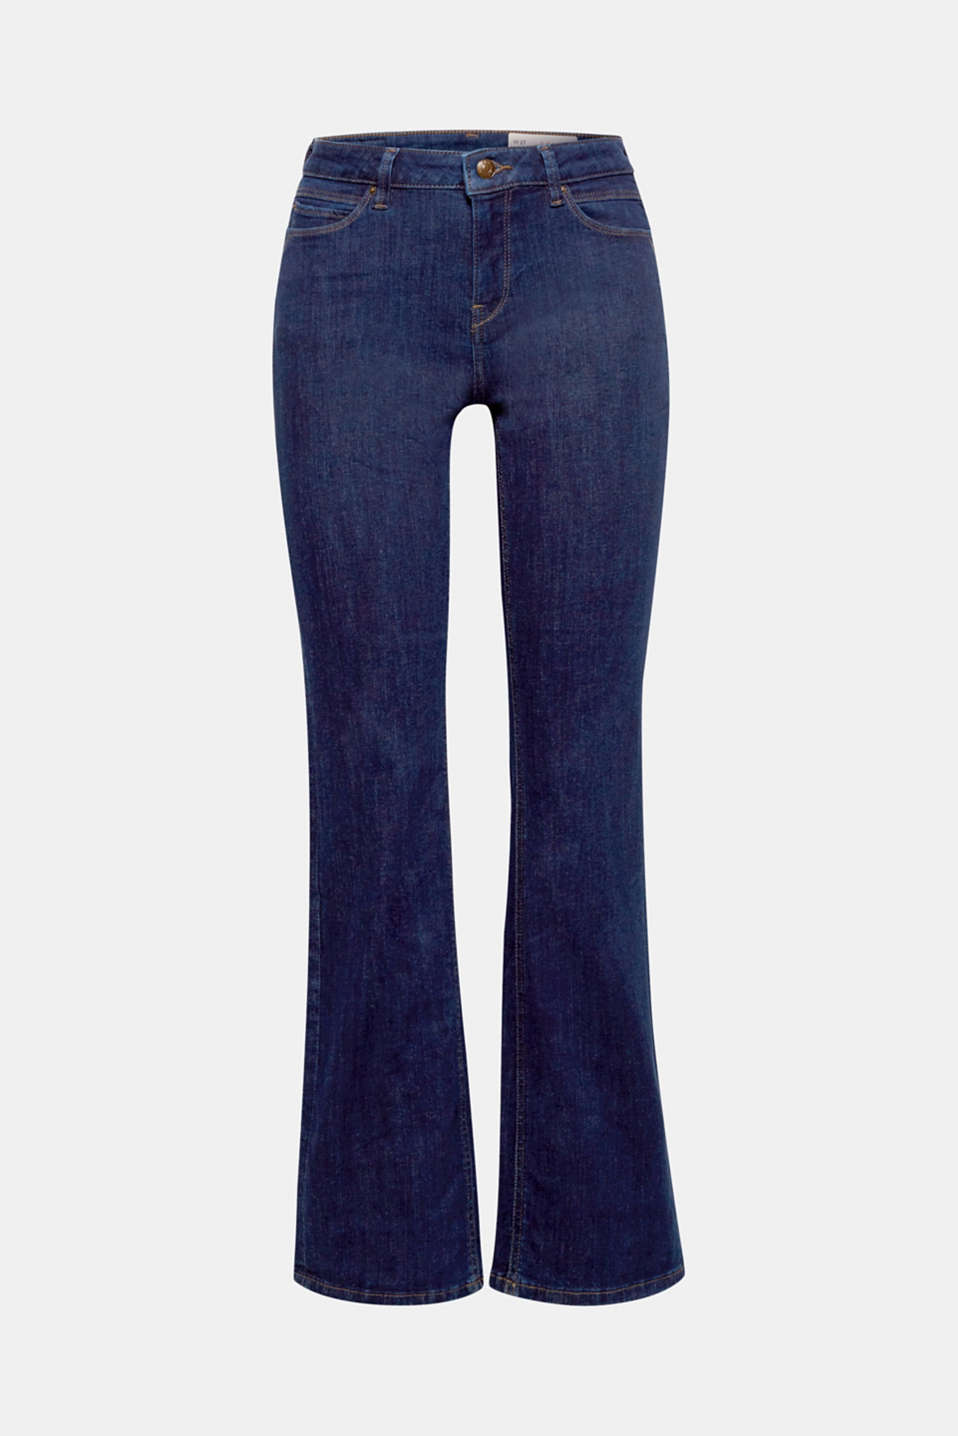 These stretch bootcut jeans in dark denim creates a super trendy, beautiful silhouette.